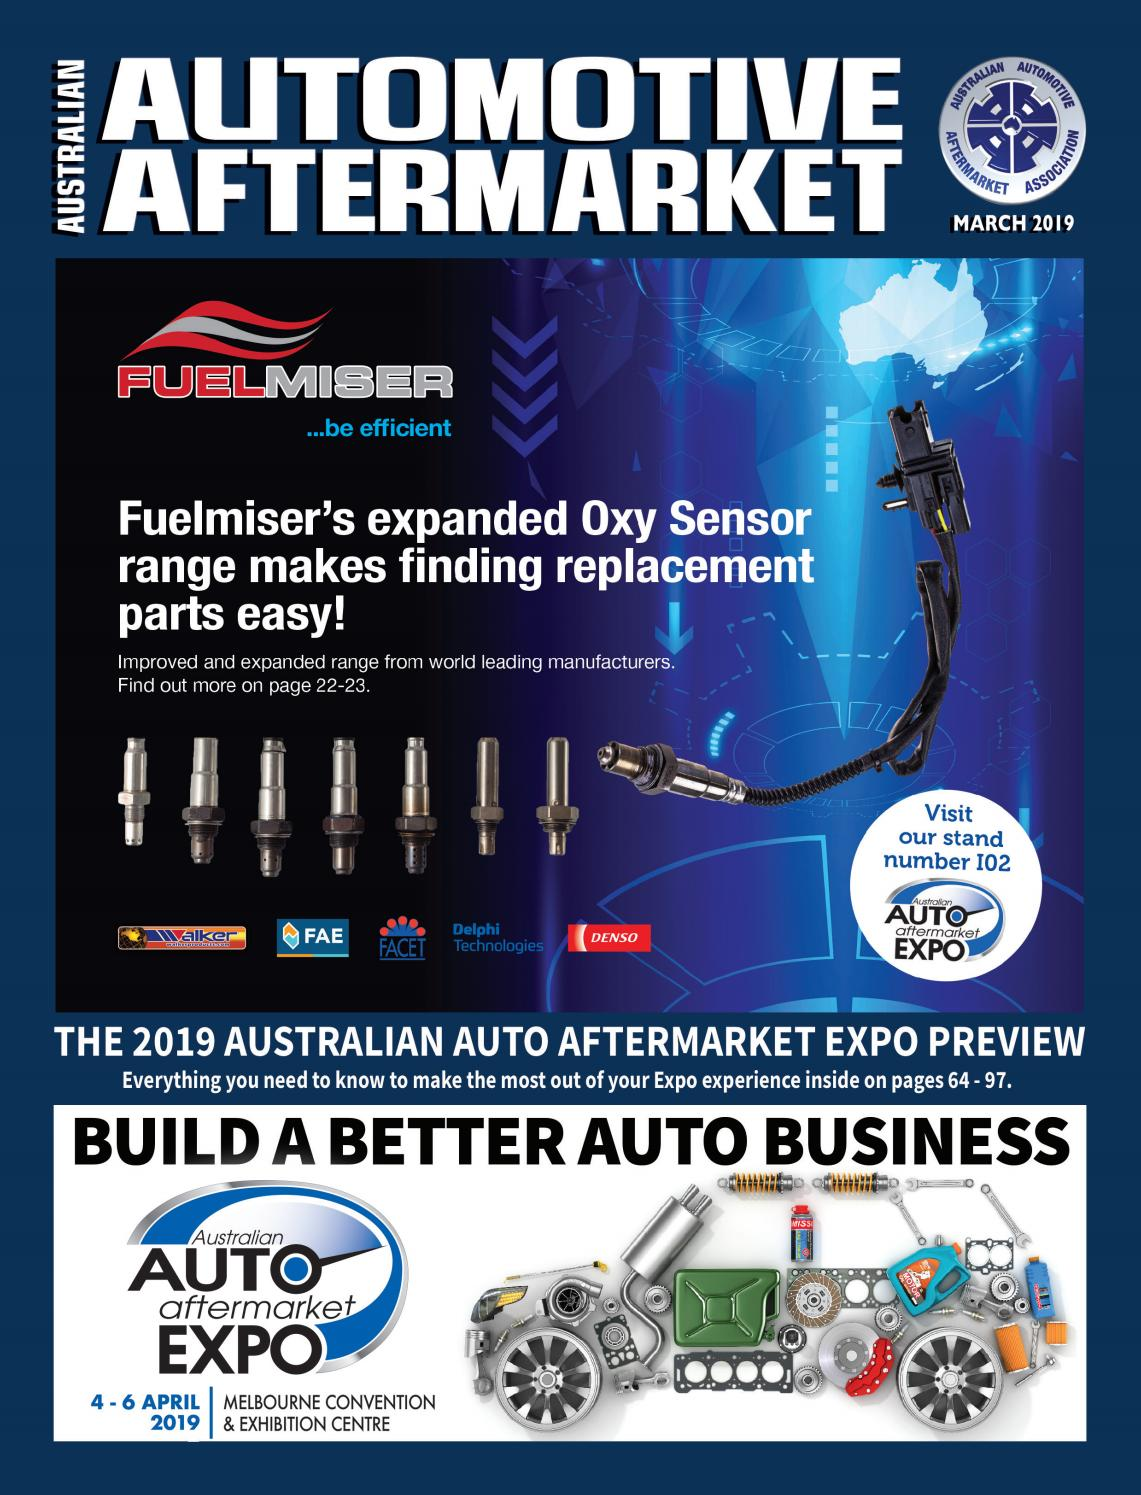 Australian Automotive Aftermarket eMagazine - March 2019 by aaaa710